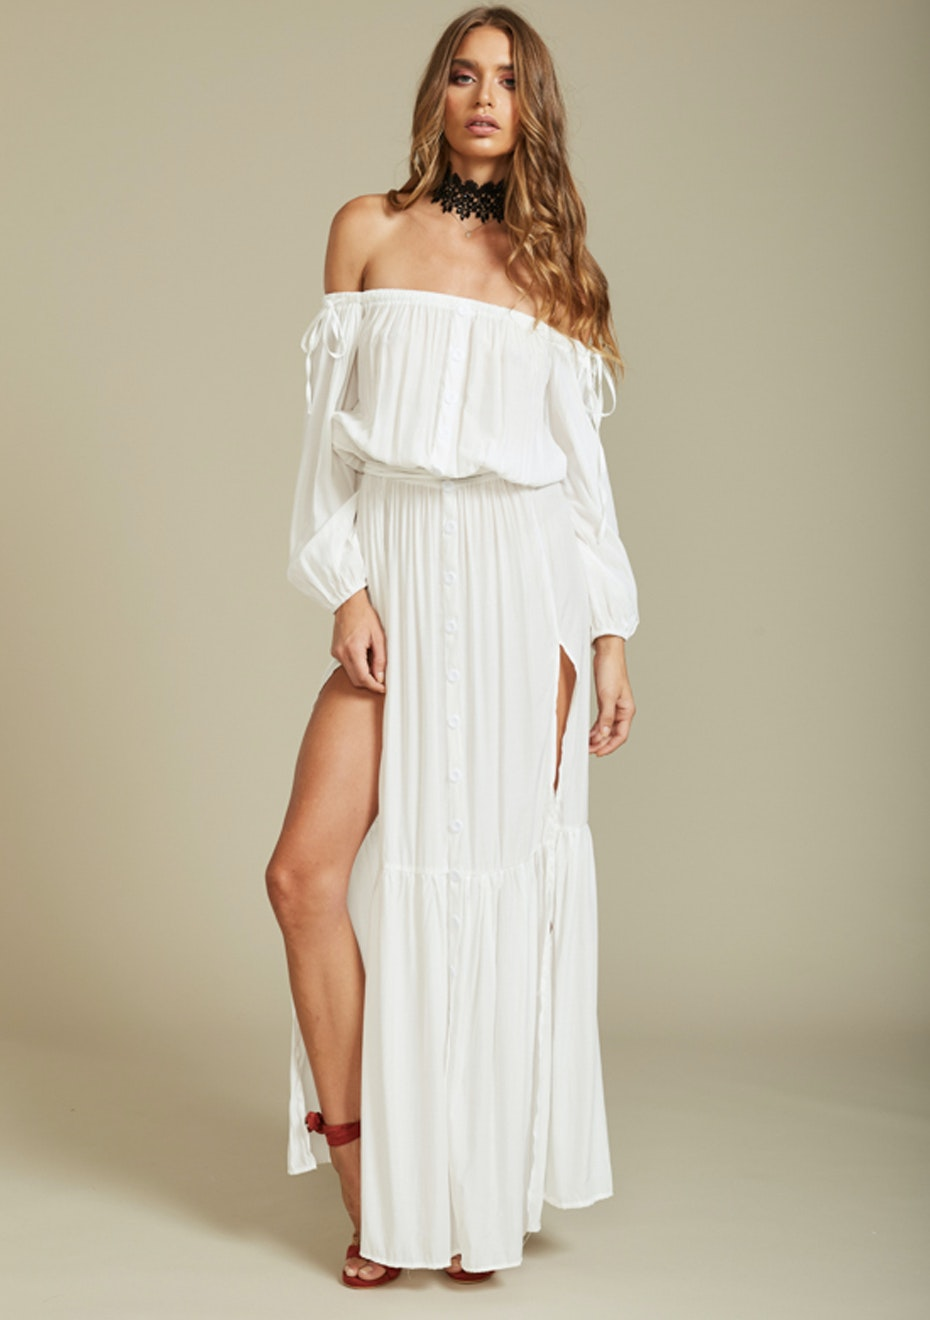 Lioness - Summer Punch Maxi Dress - White